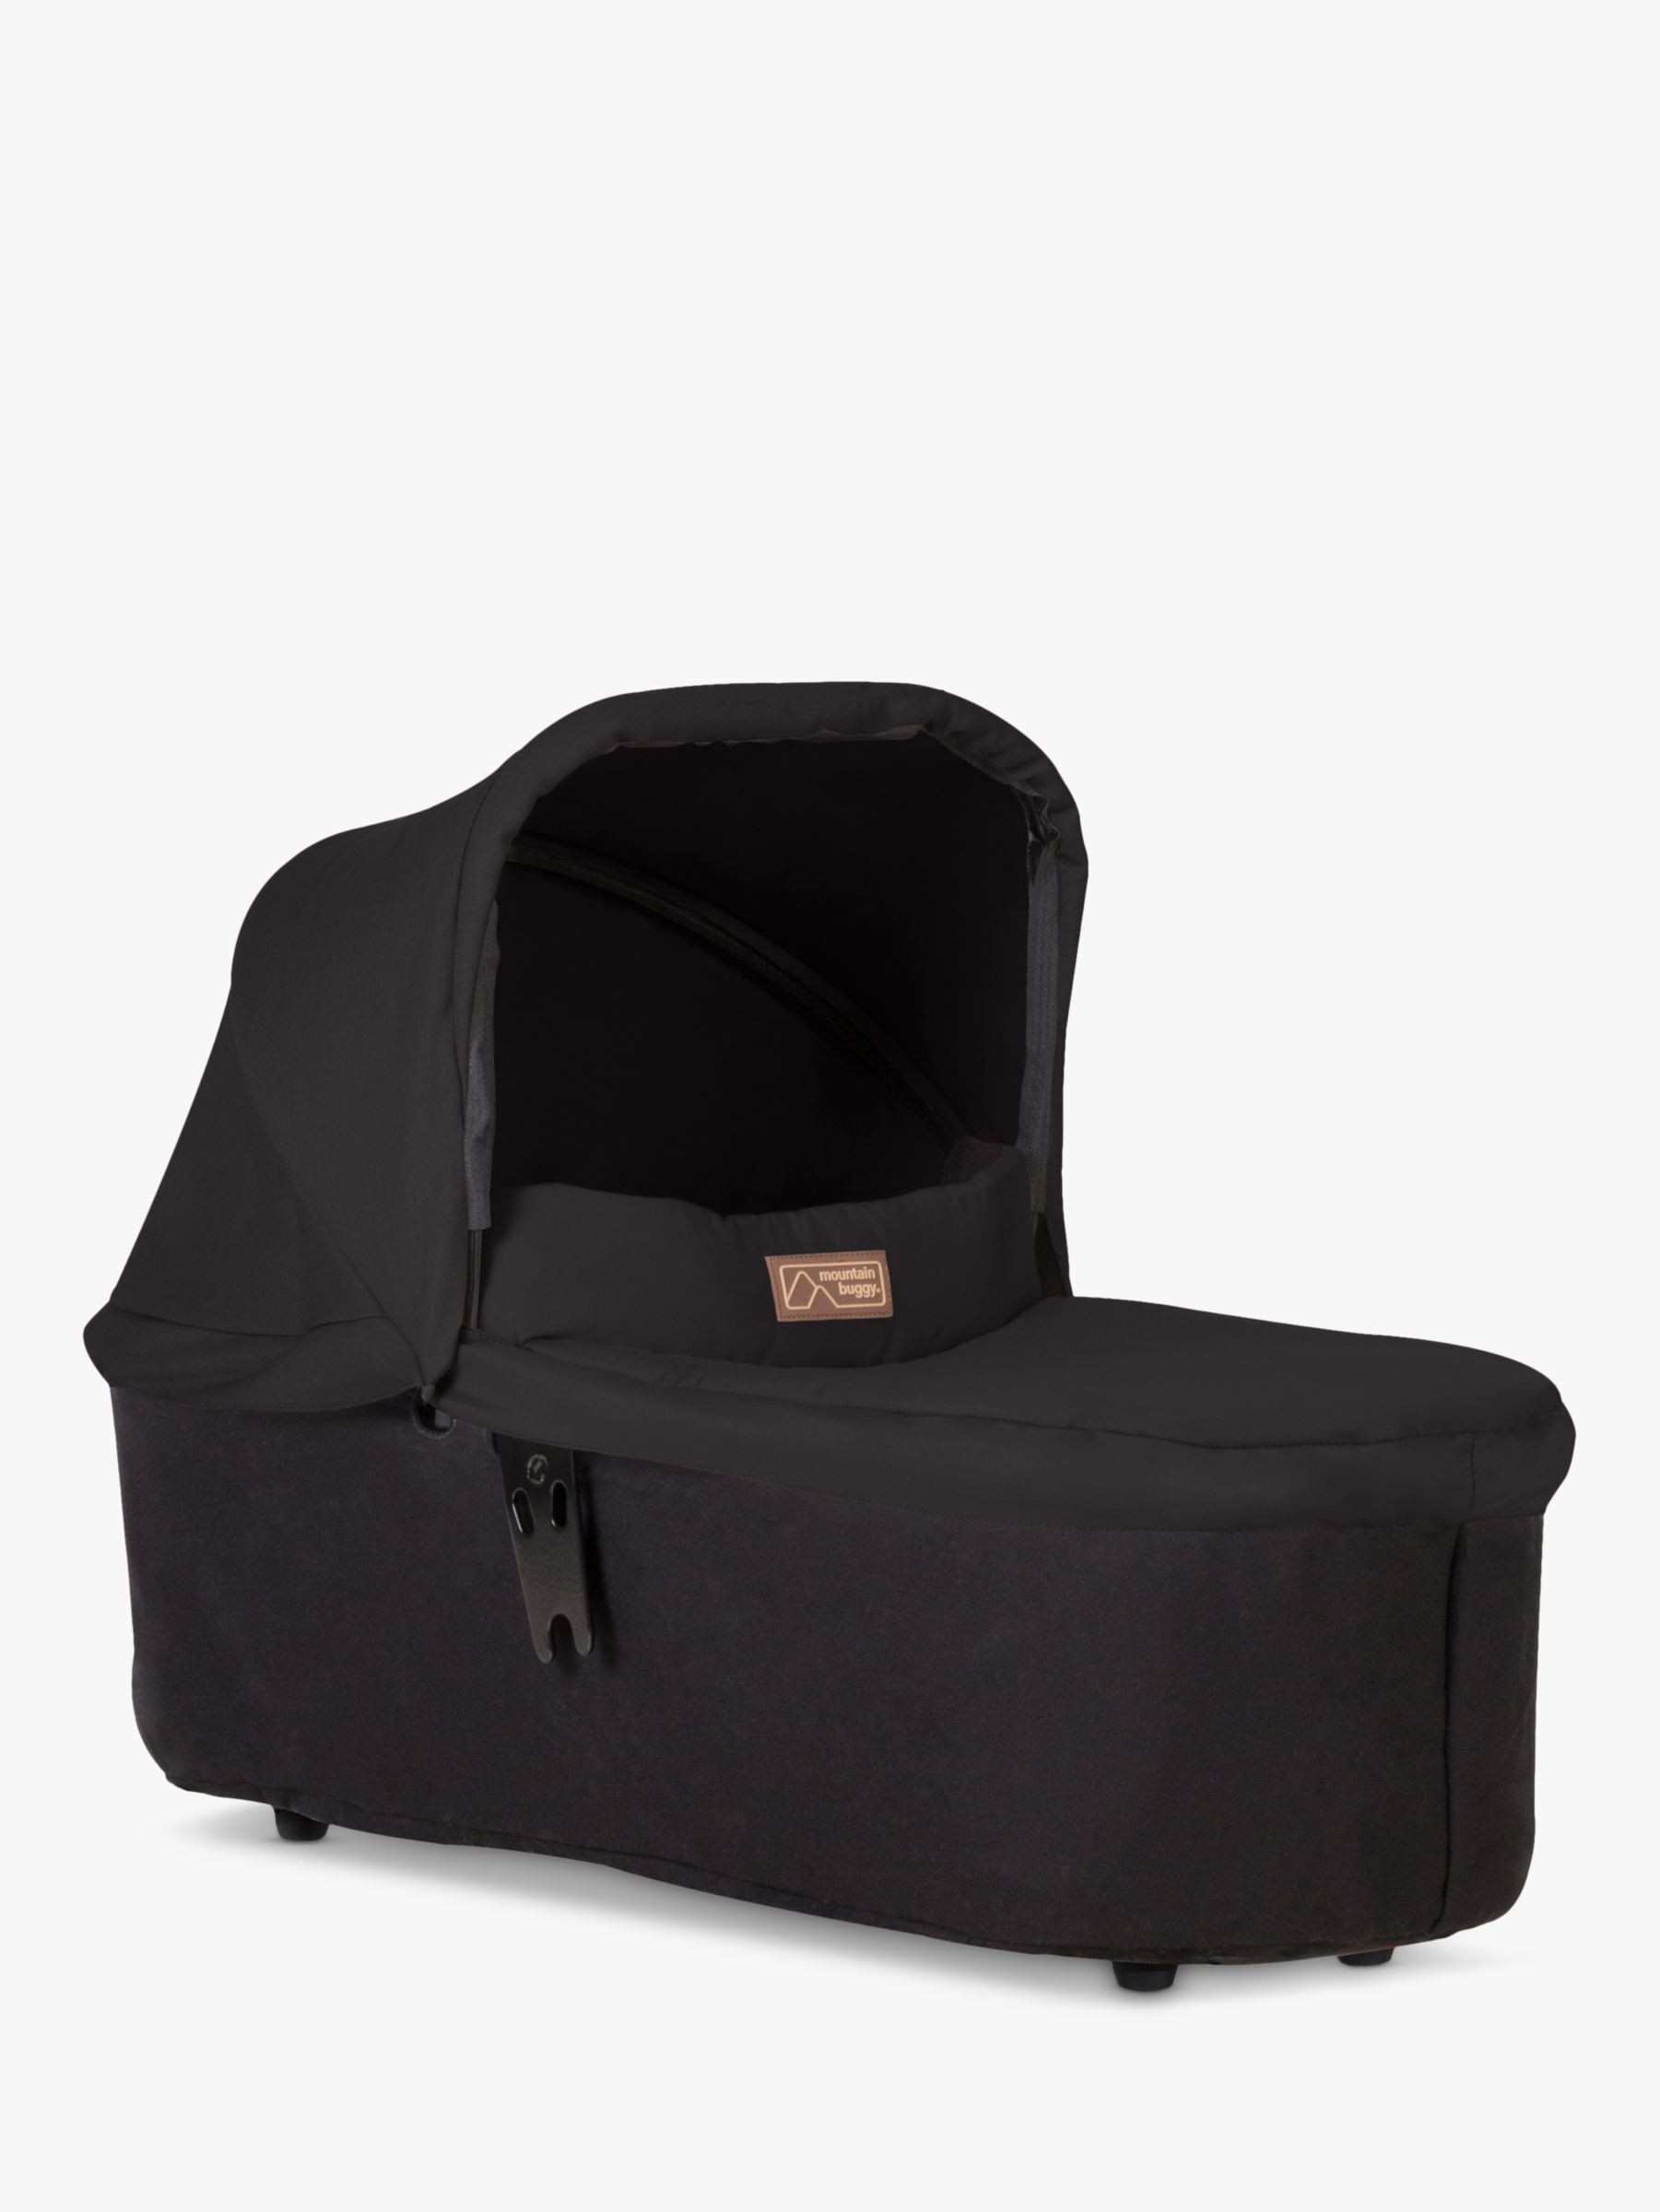 Mountain Buggy Duet Carrycot Plus, Black